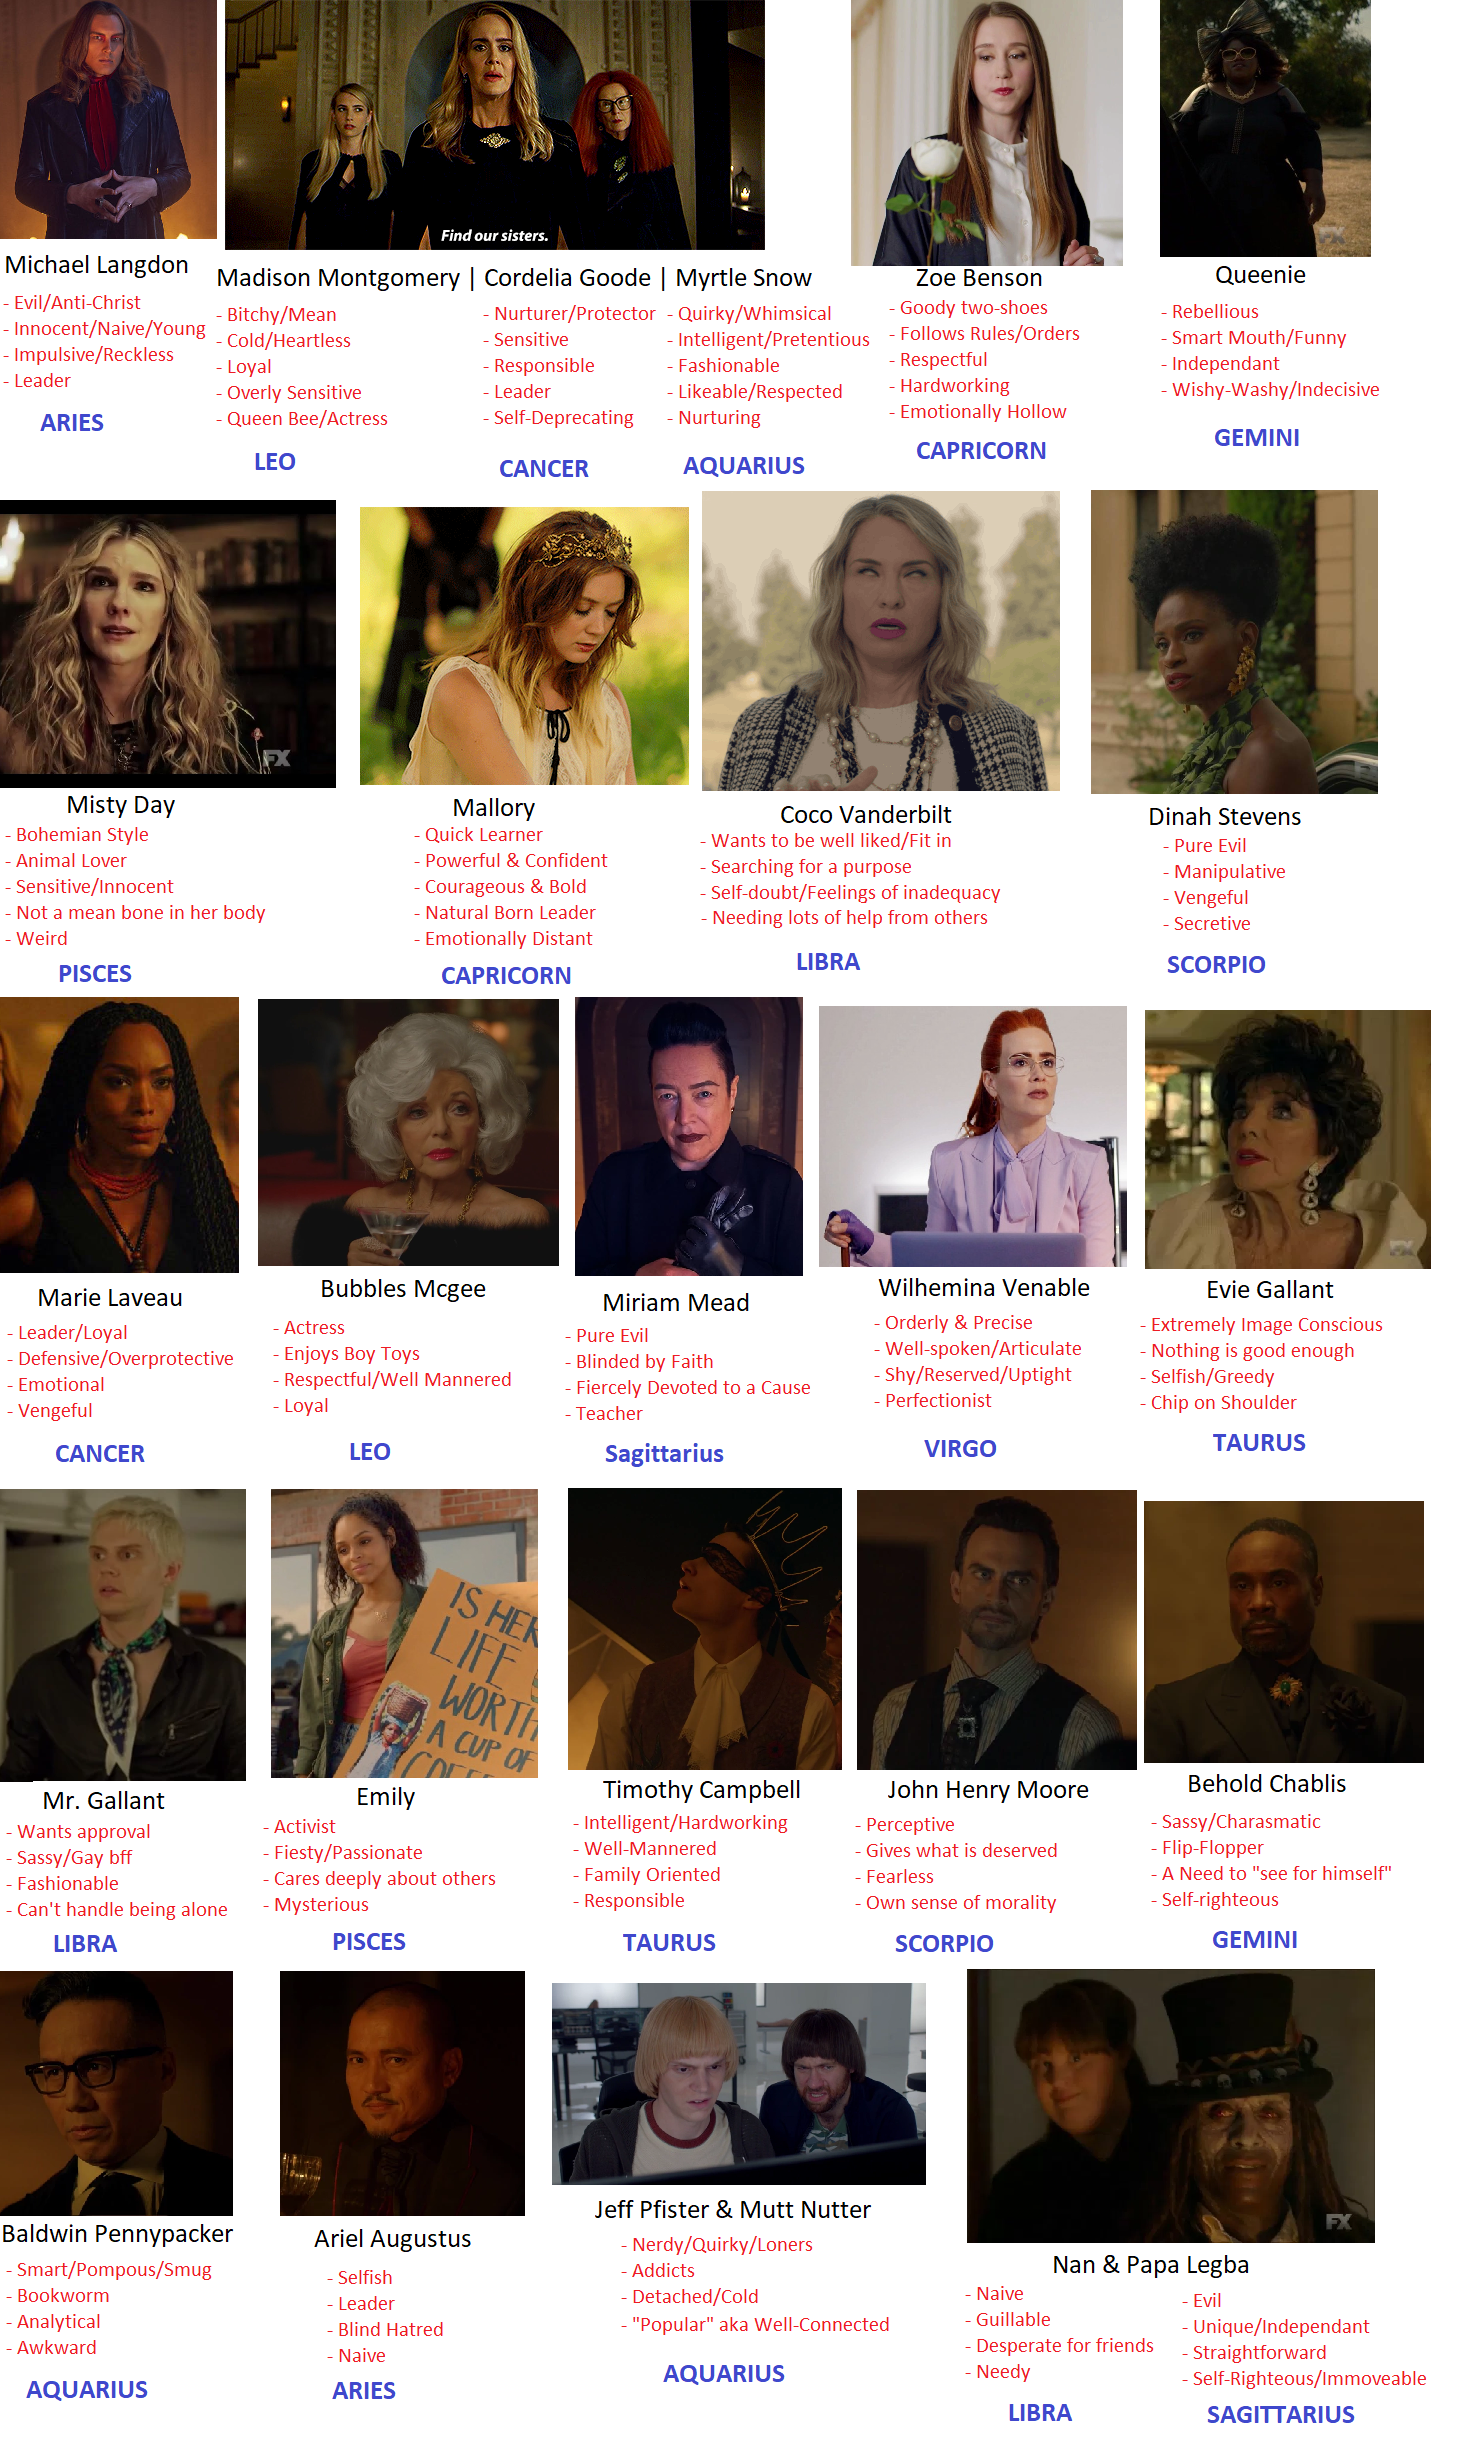 American Horror Story Apocalypse Astrology Signs